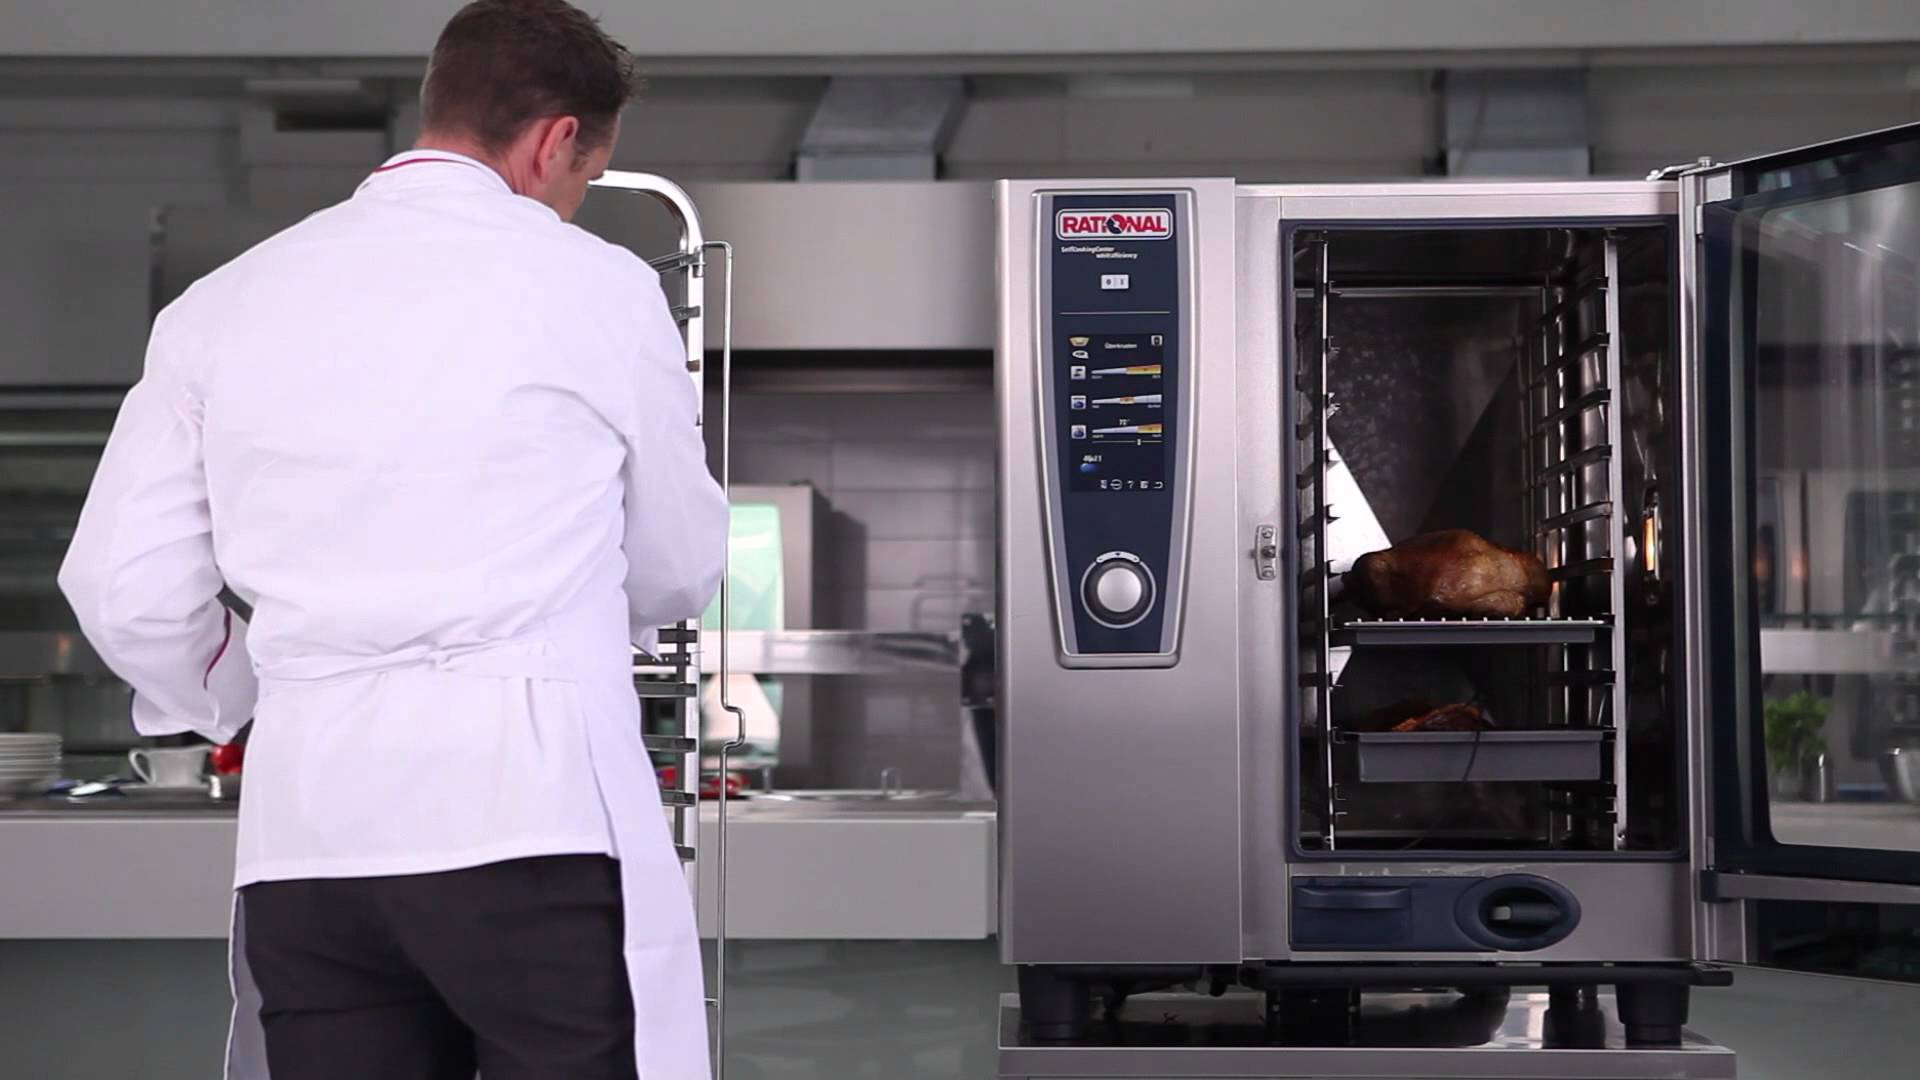 Rational ovens